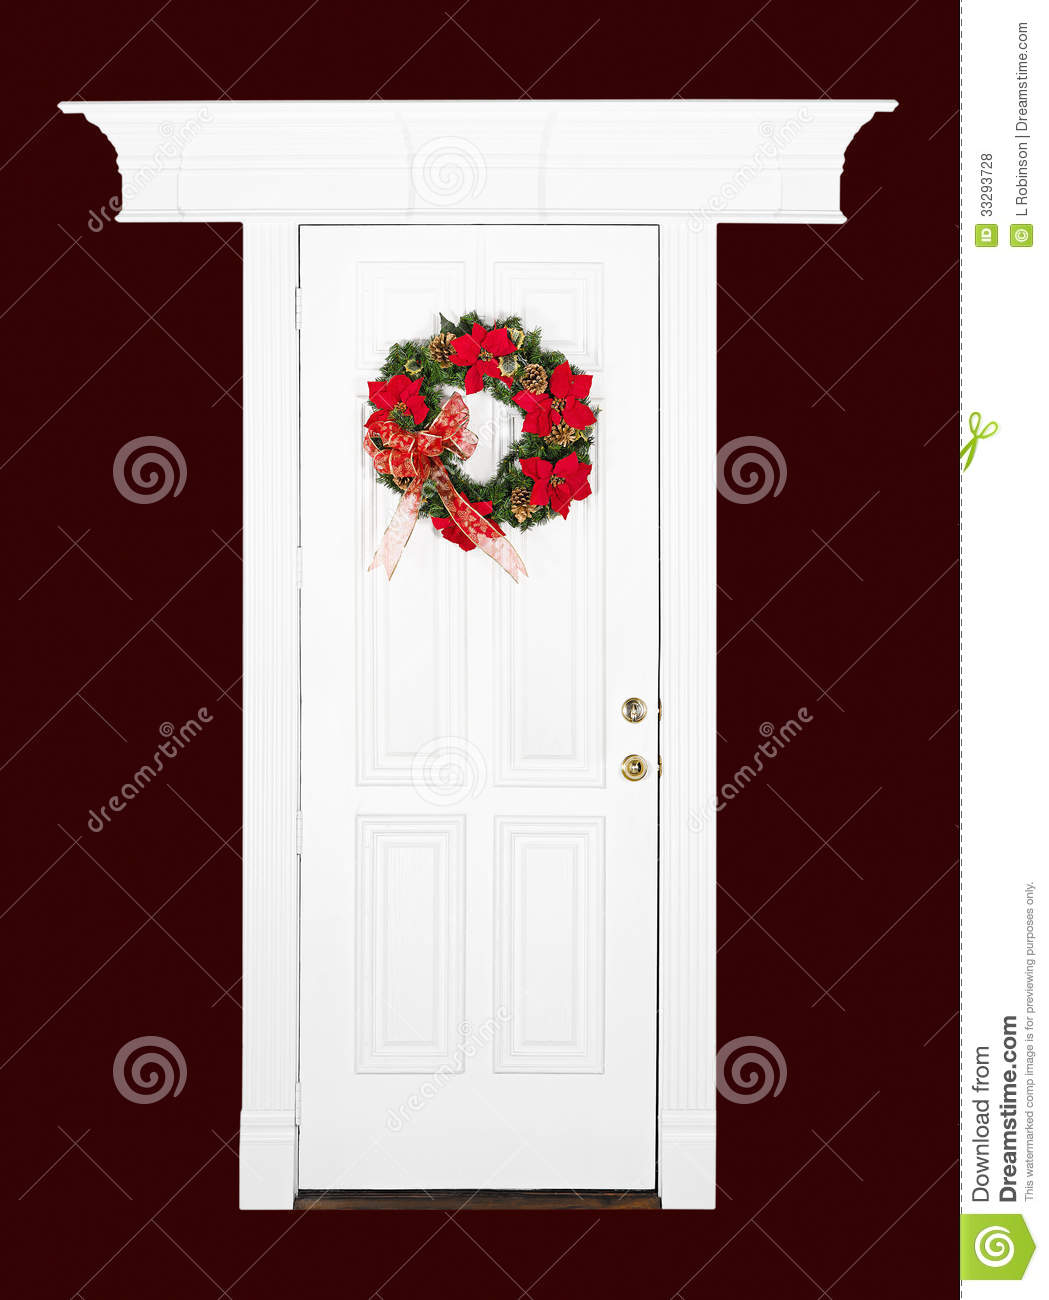 Christmas Flower Wreath On White Door Stock Photo - Image of closed ...